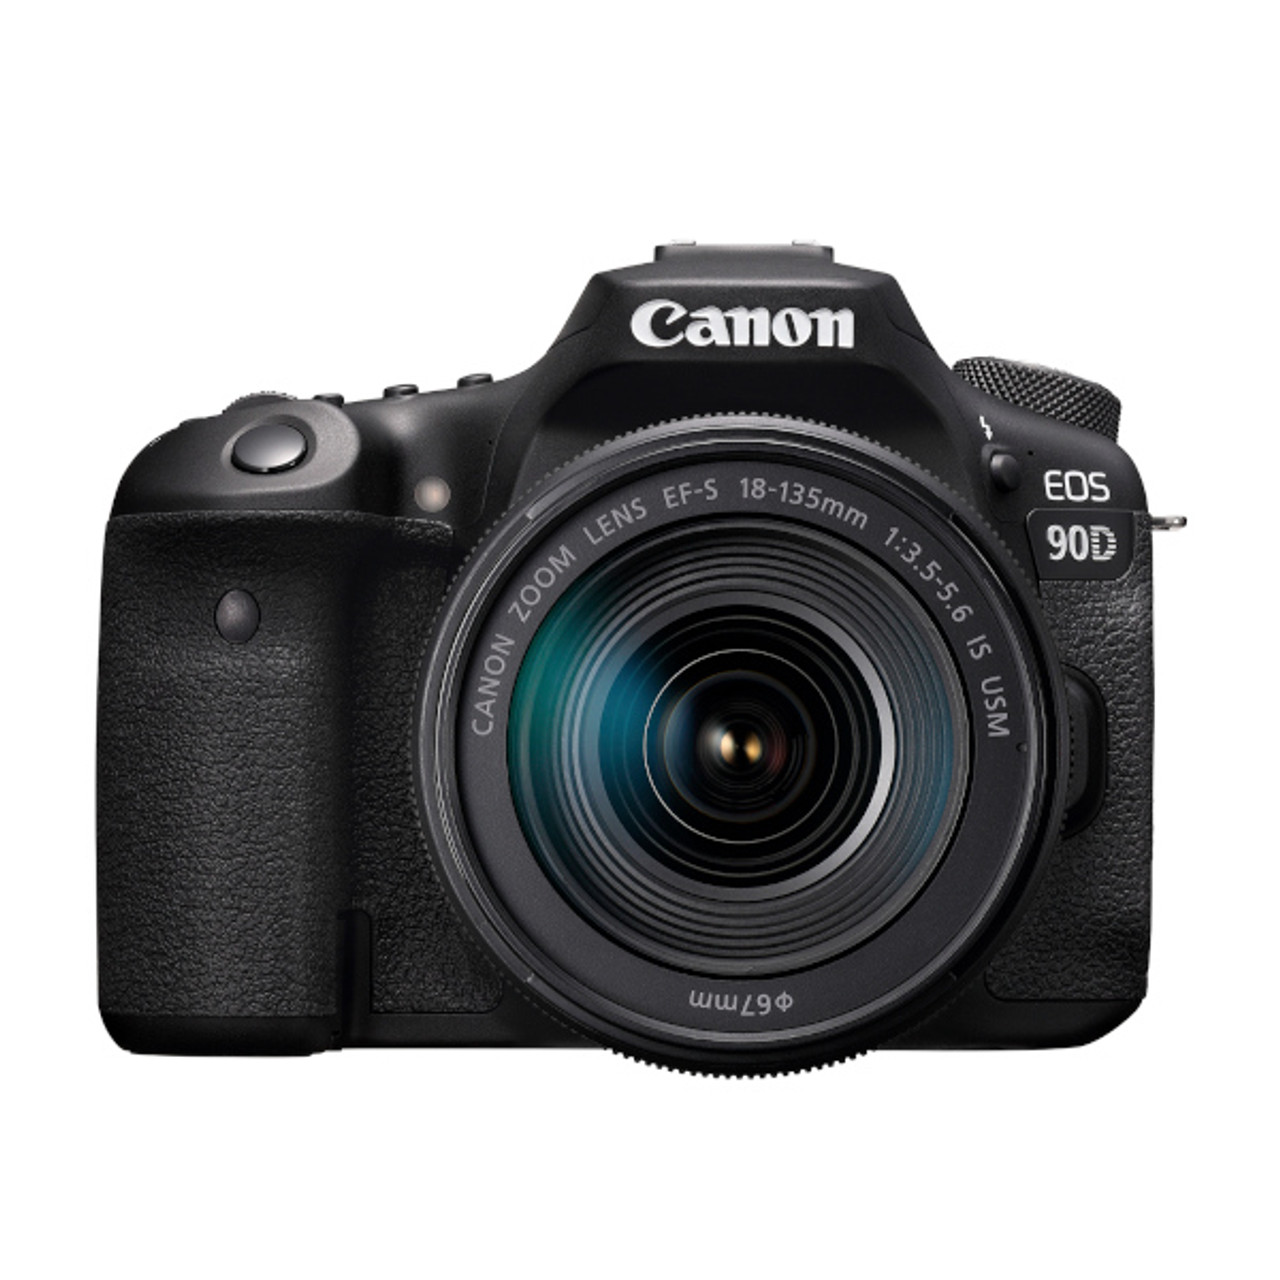 Canon EOS 90D 18-135mm IS USM